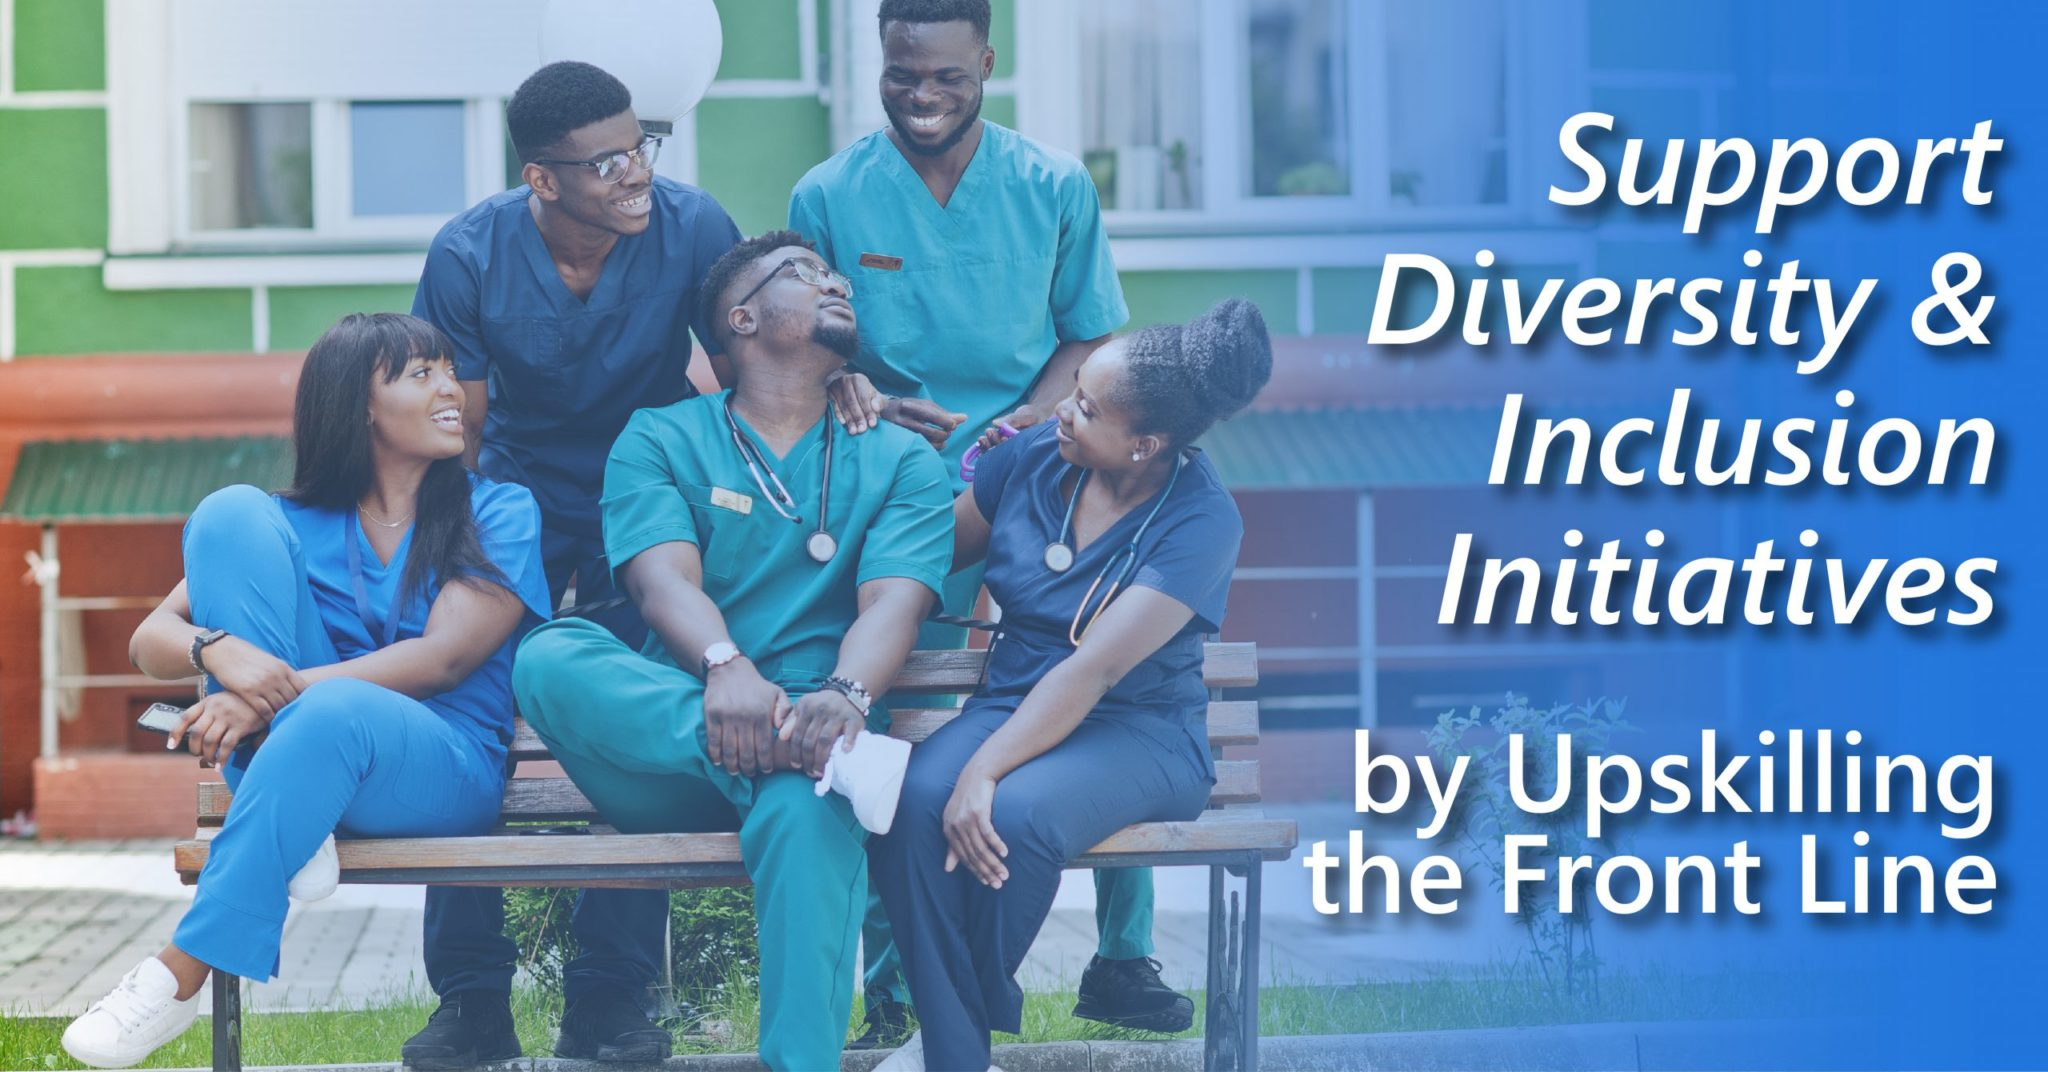 Support Diversity Inclusion upskilling Front Line